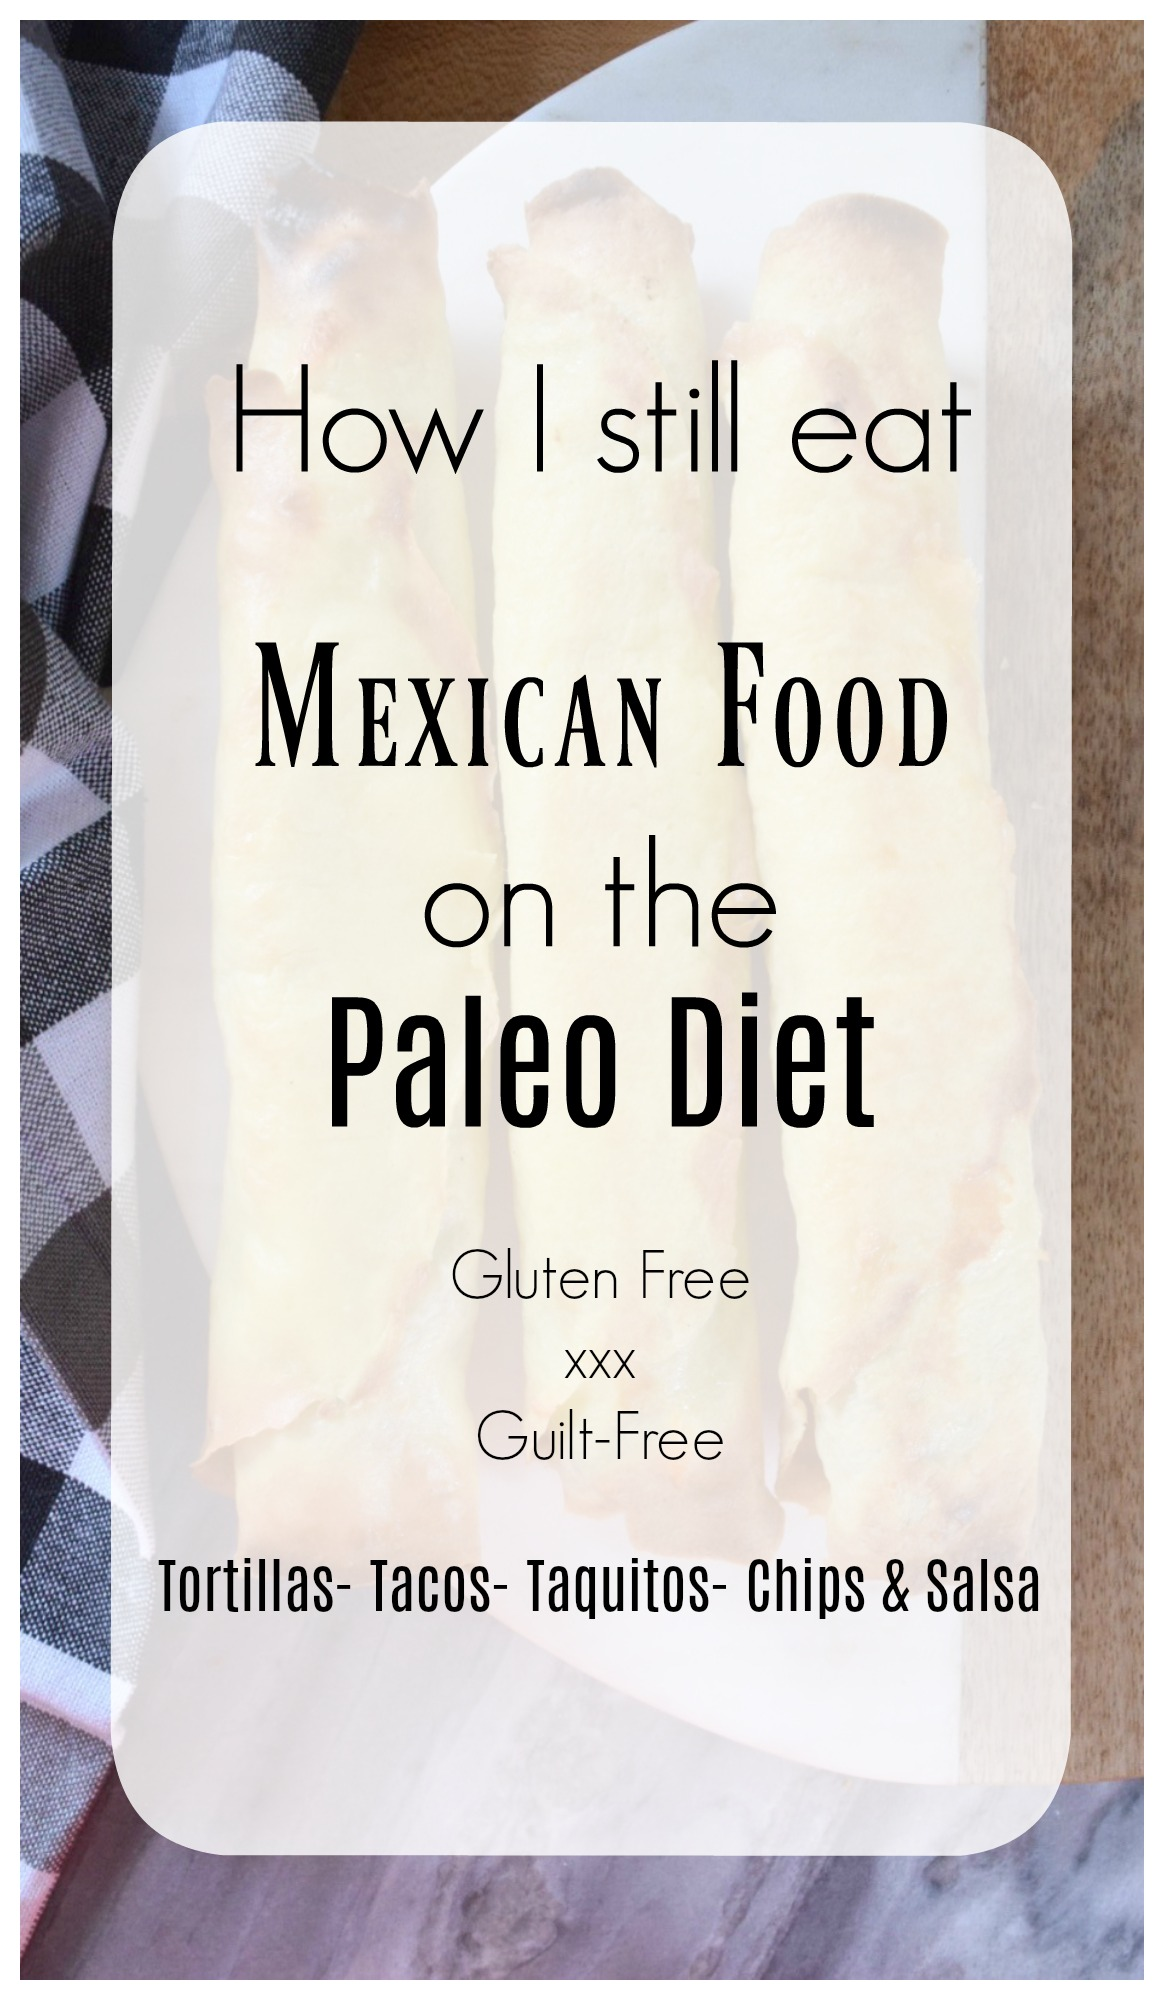 How I still eat Mexican Food on the Paleo Diet!